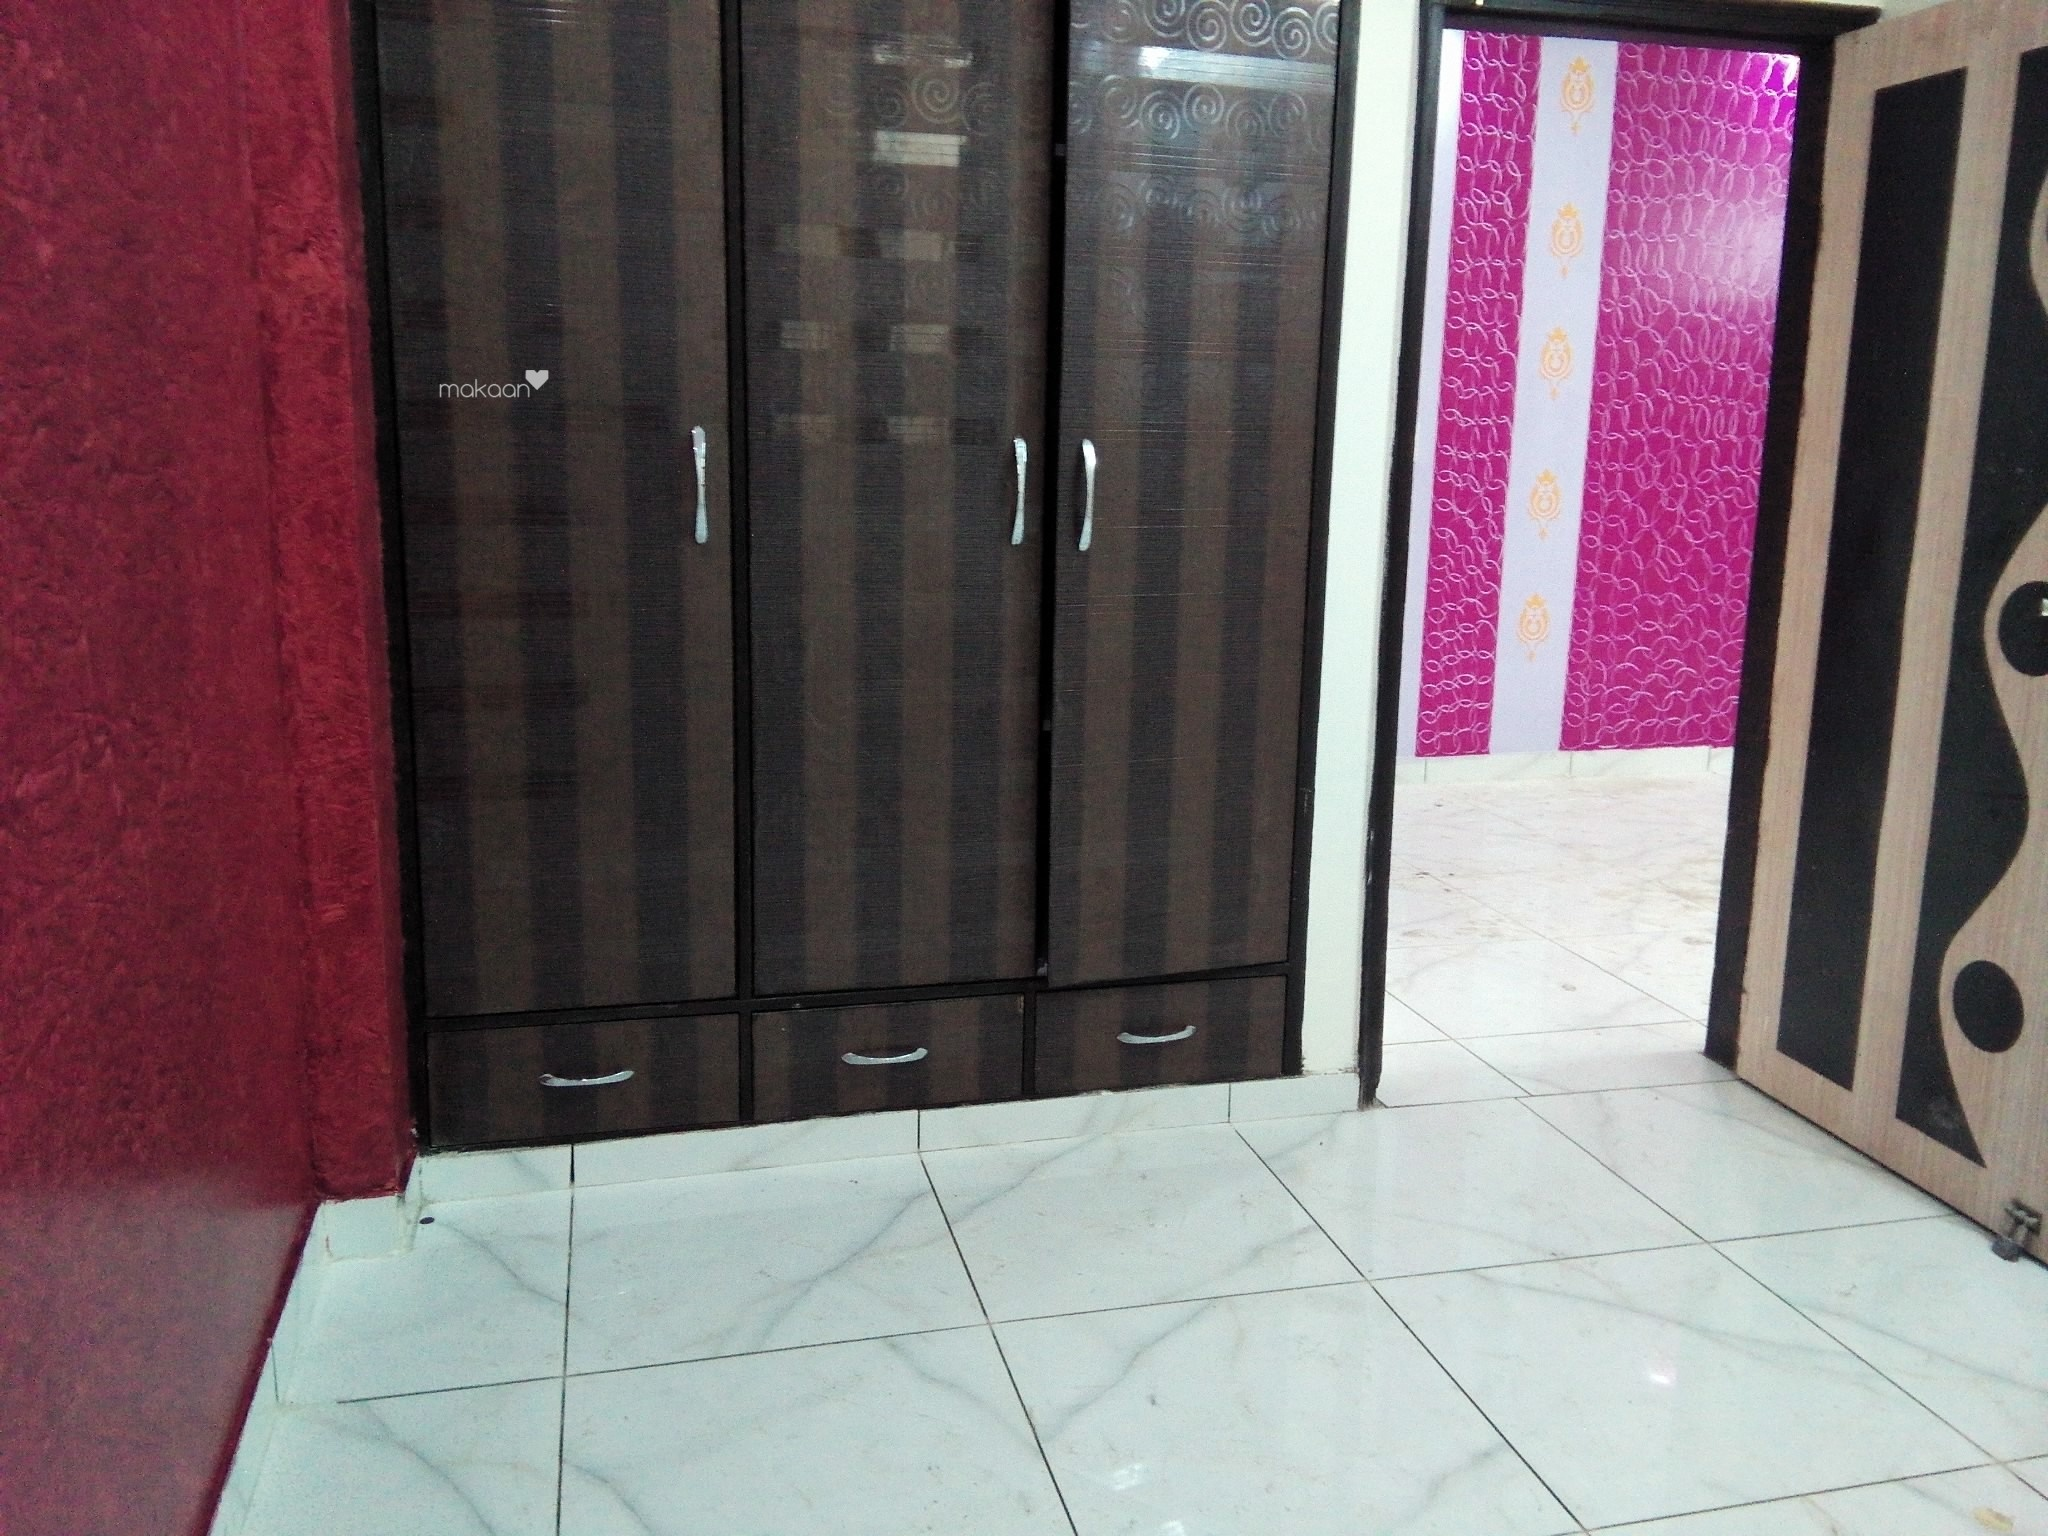 1000 sq ft 2BHK 2BHK+2T (1,000 sq ft) Property By Demera Homz In Project, Sector 6 Vaishali